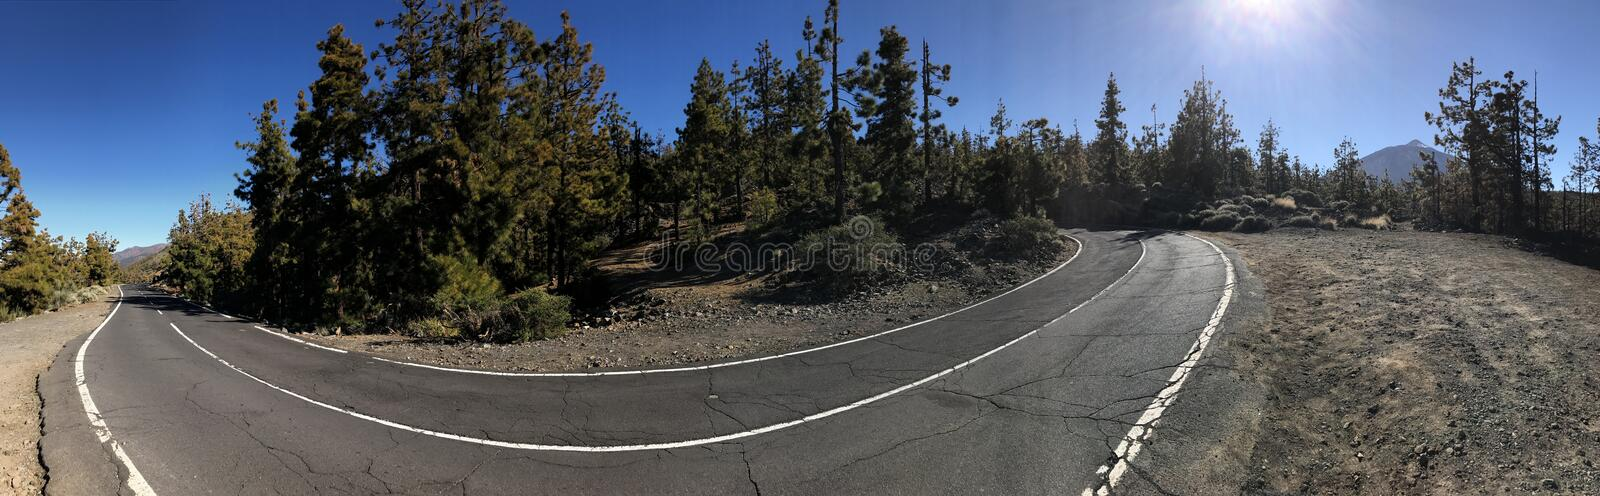 Road through Teide National Park. Panorama from a road through Teide National Park at Tenerife royalty free stock photo